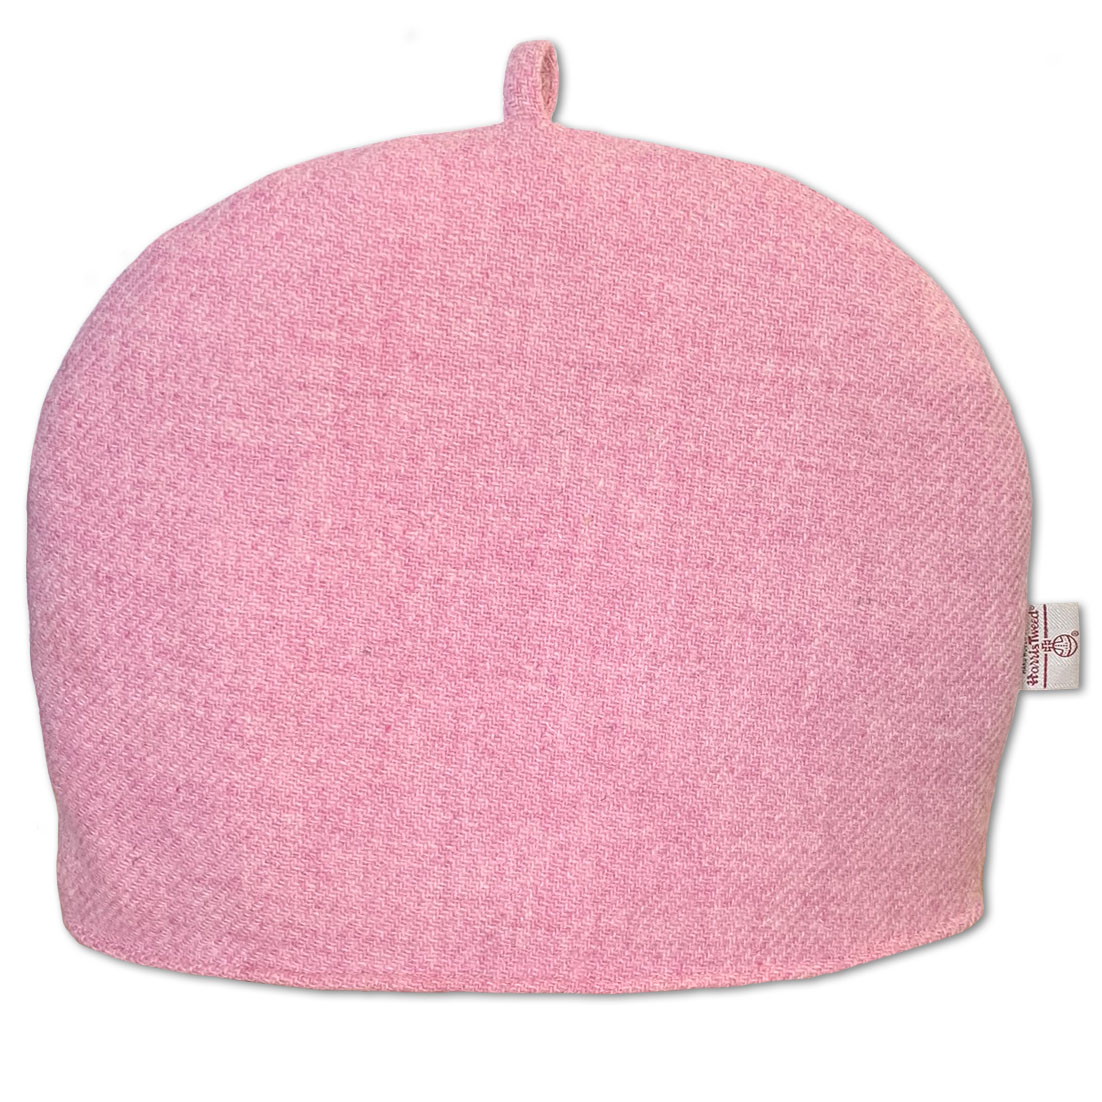 Harris Tweed Blush Pink Tea Cosy